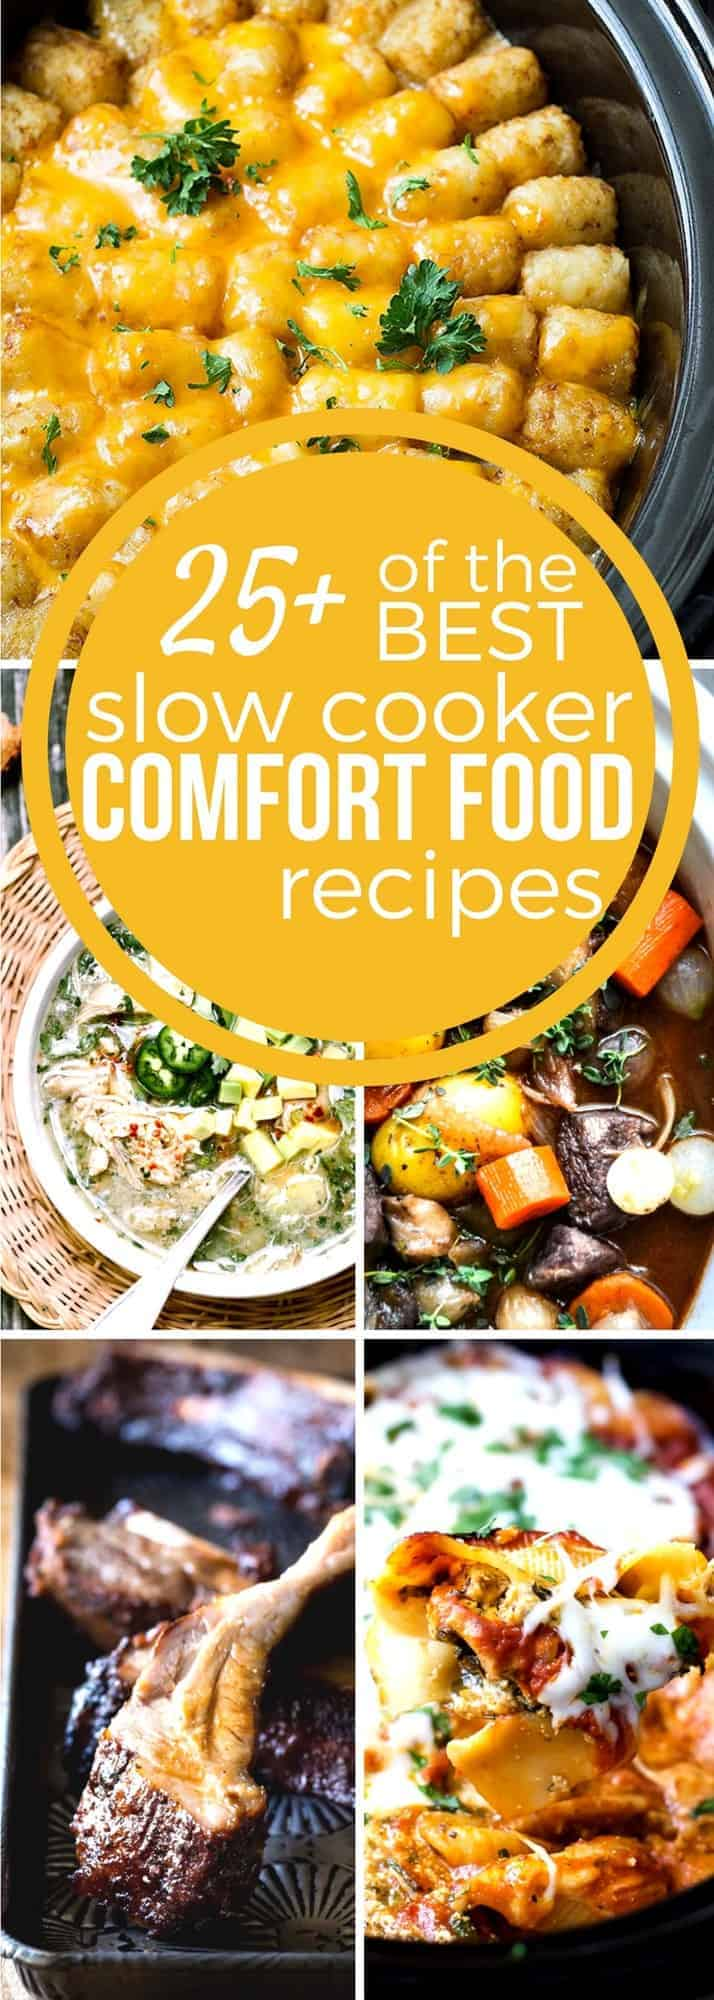 Comfort food is a hearty meal that sticks to your ribs and just makes you feel good. It's so nice to come home after a long day to a comforting meal and slow cooker recipes make cooking easy! With our Slow Cooker Comfort Food Recipes just set it & forget it for a delicious meal any night of the week! #SundaySupper  #slowcookerrecipes